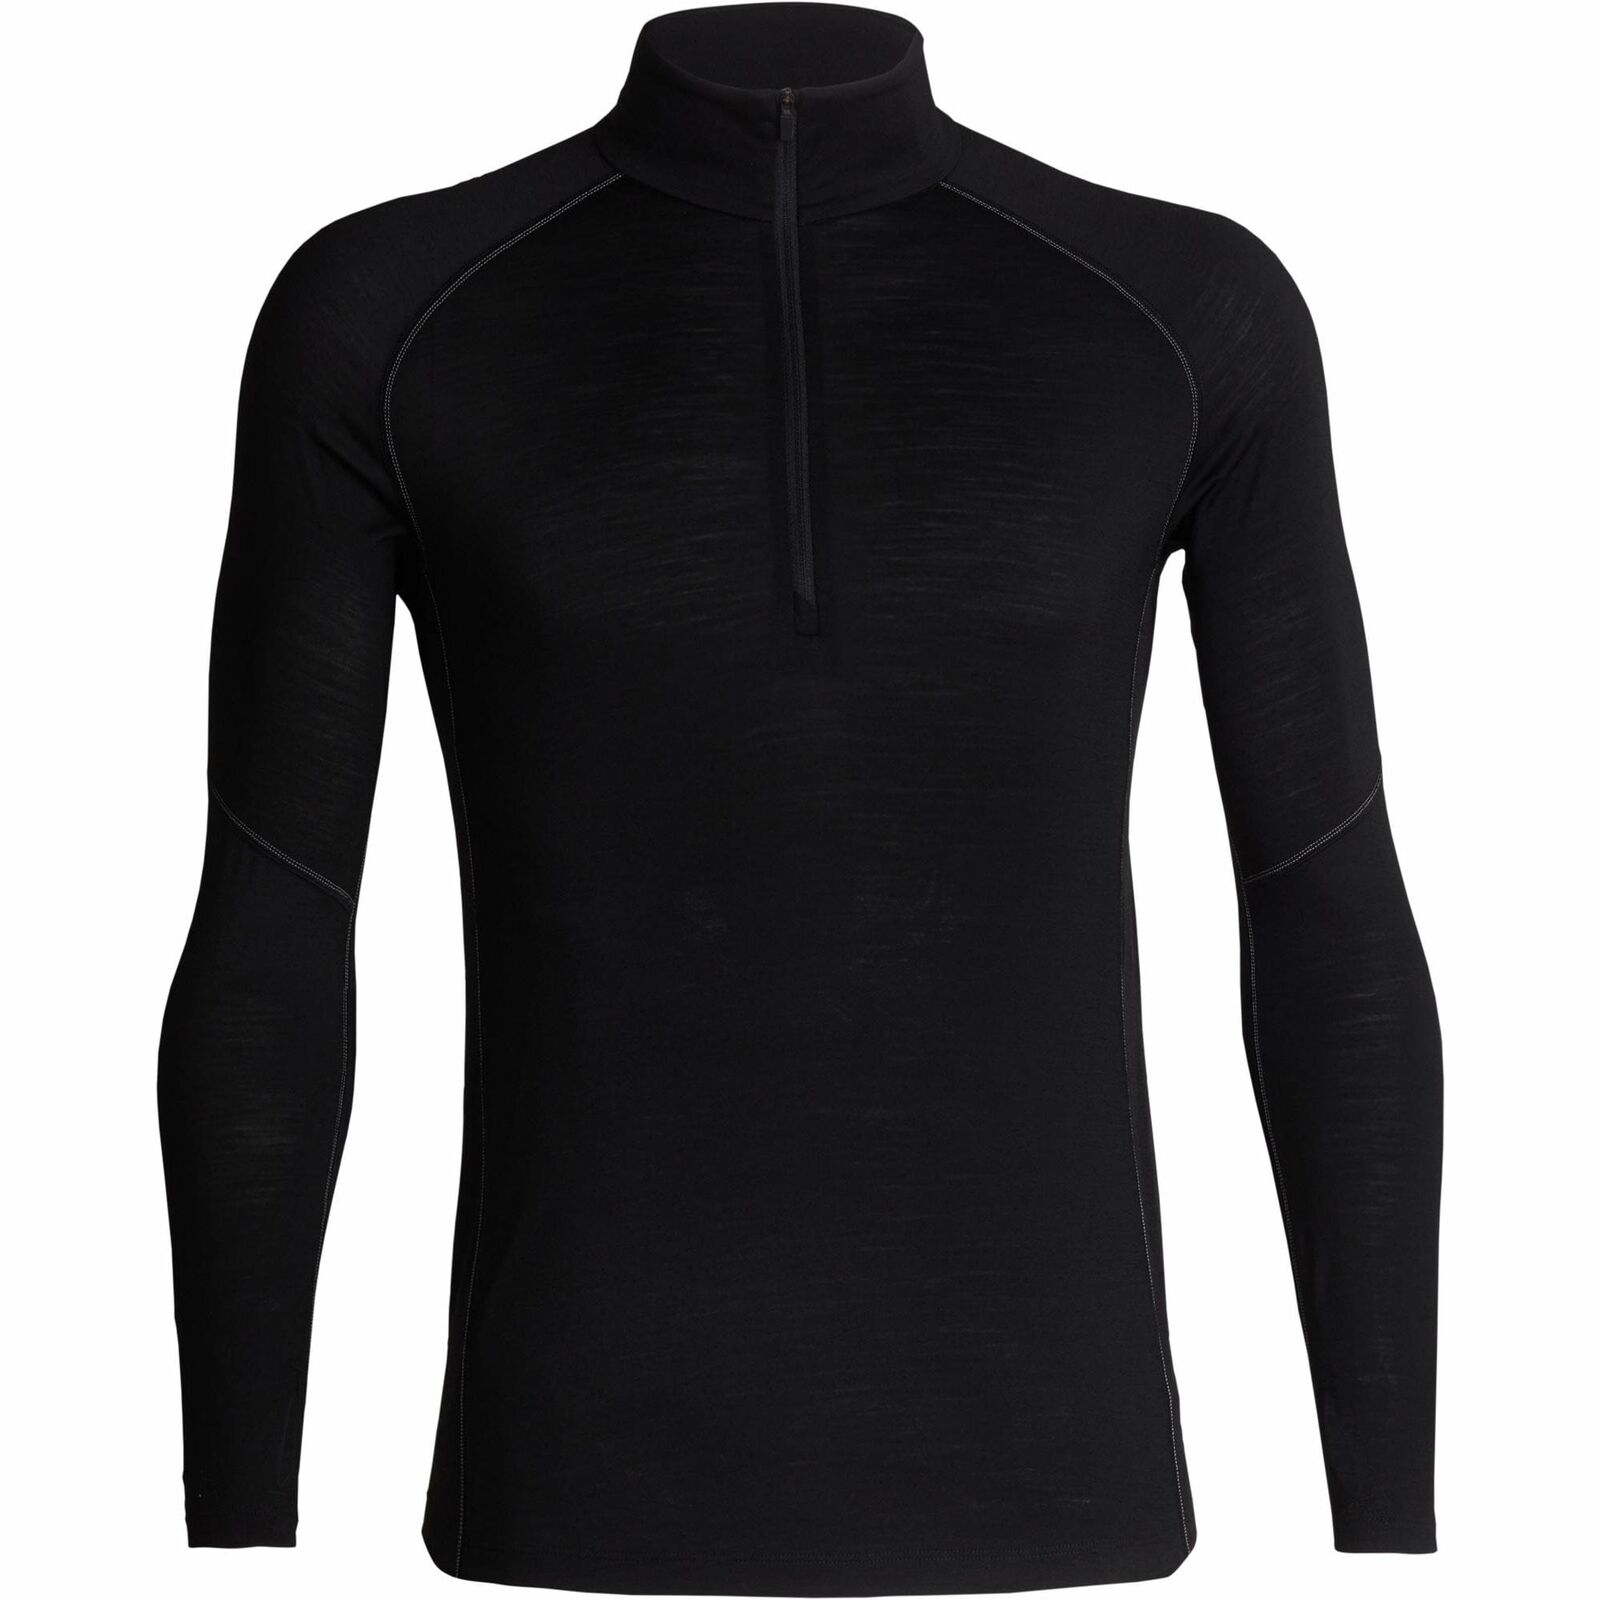 Icebreaker 150 Zone Long Sleeve Half Zip